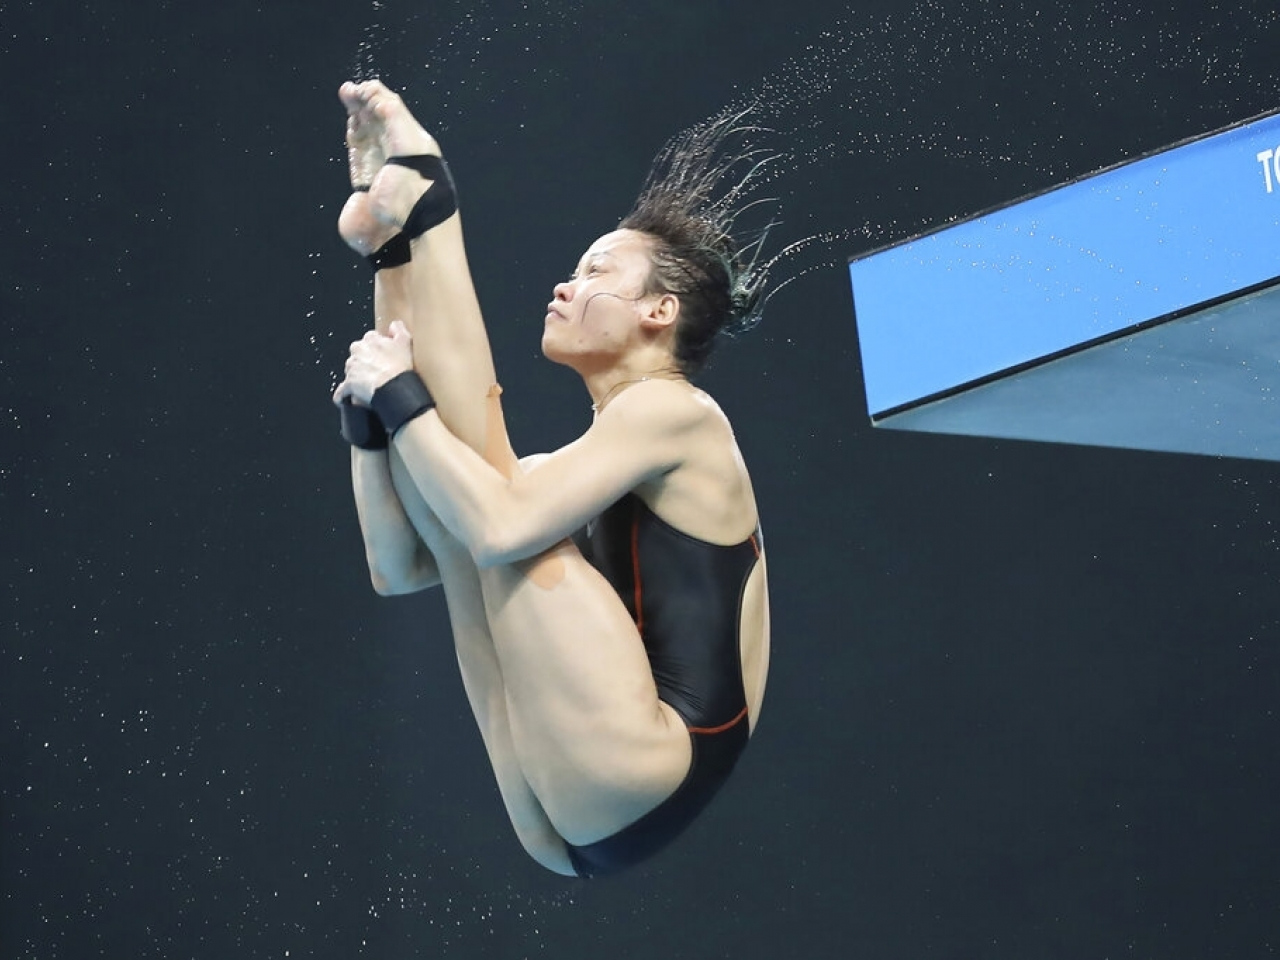 Malaysian diver Pandelela Pamg takes part in a pre-Olympic event in Tokyo this week. Concern has mounted in Japan over the safety of the Games. Photo: AP